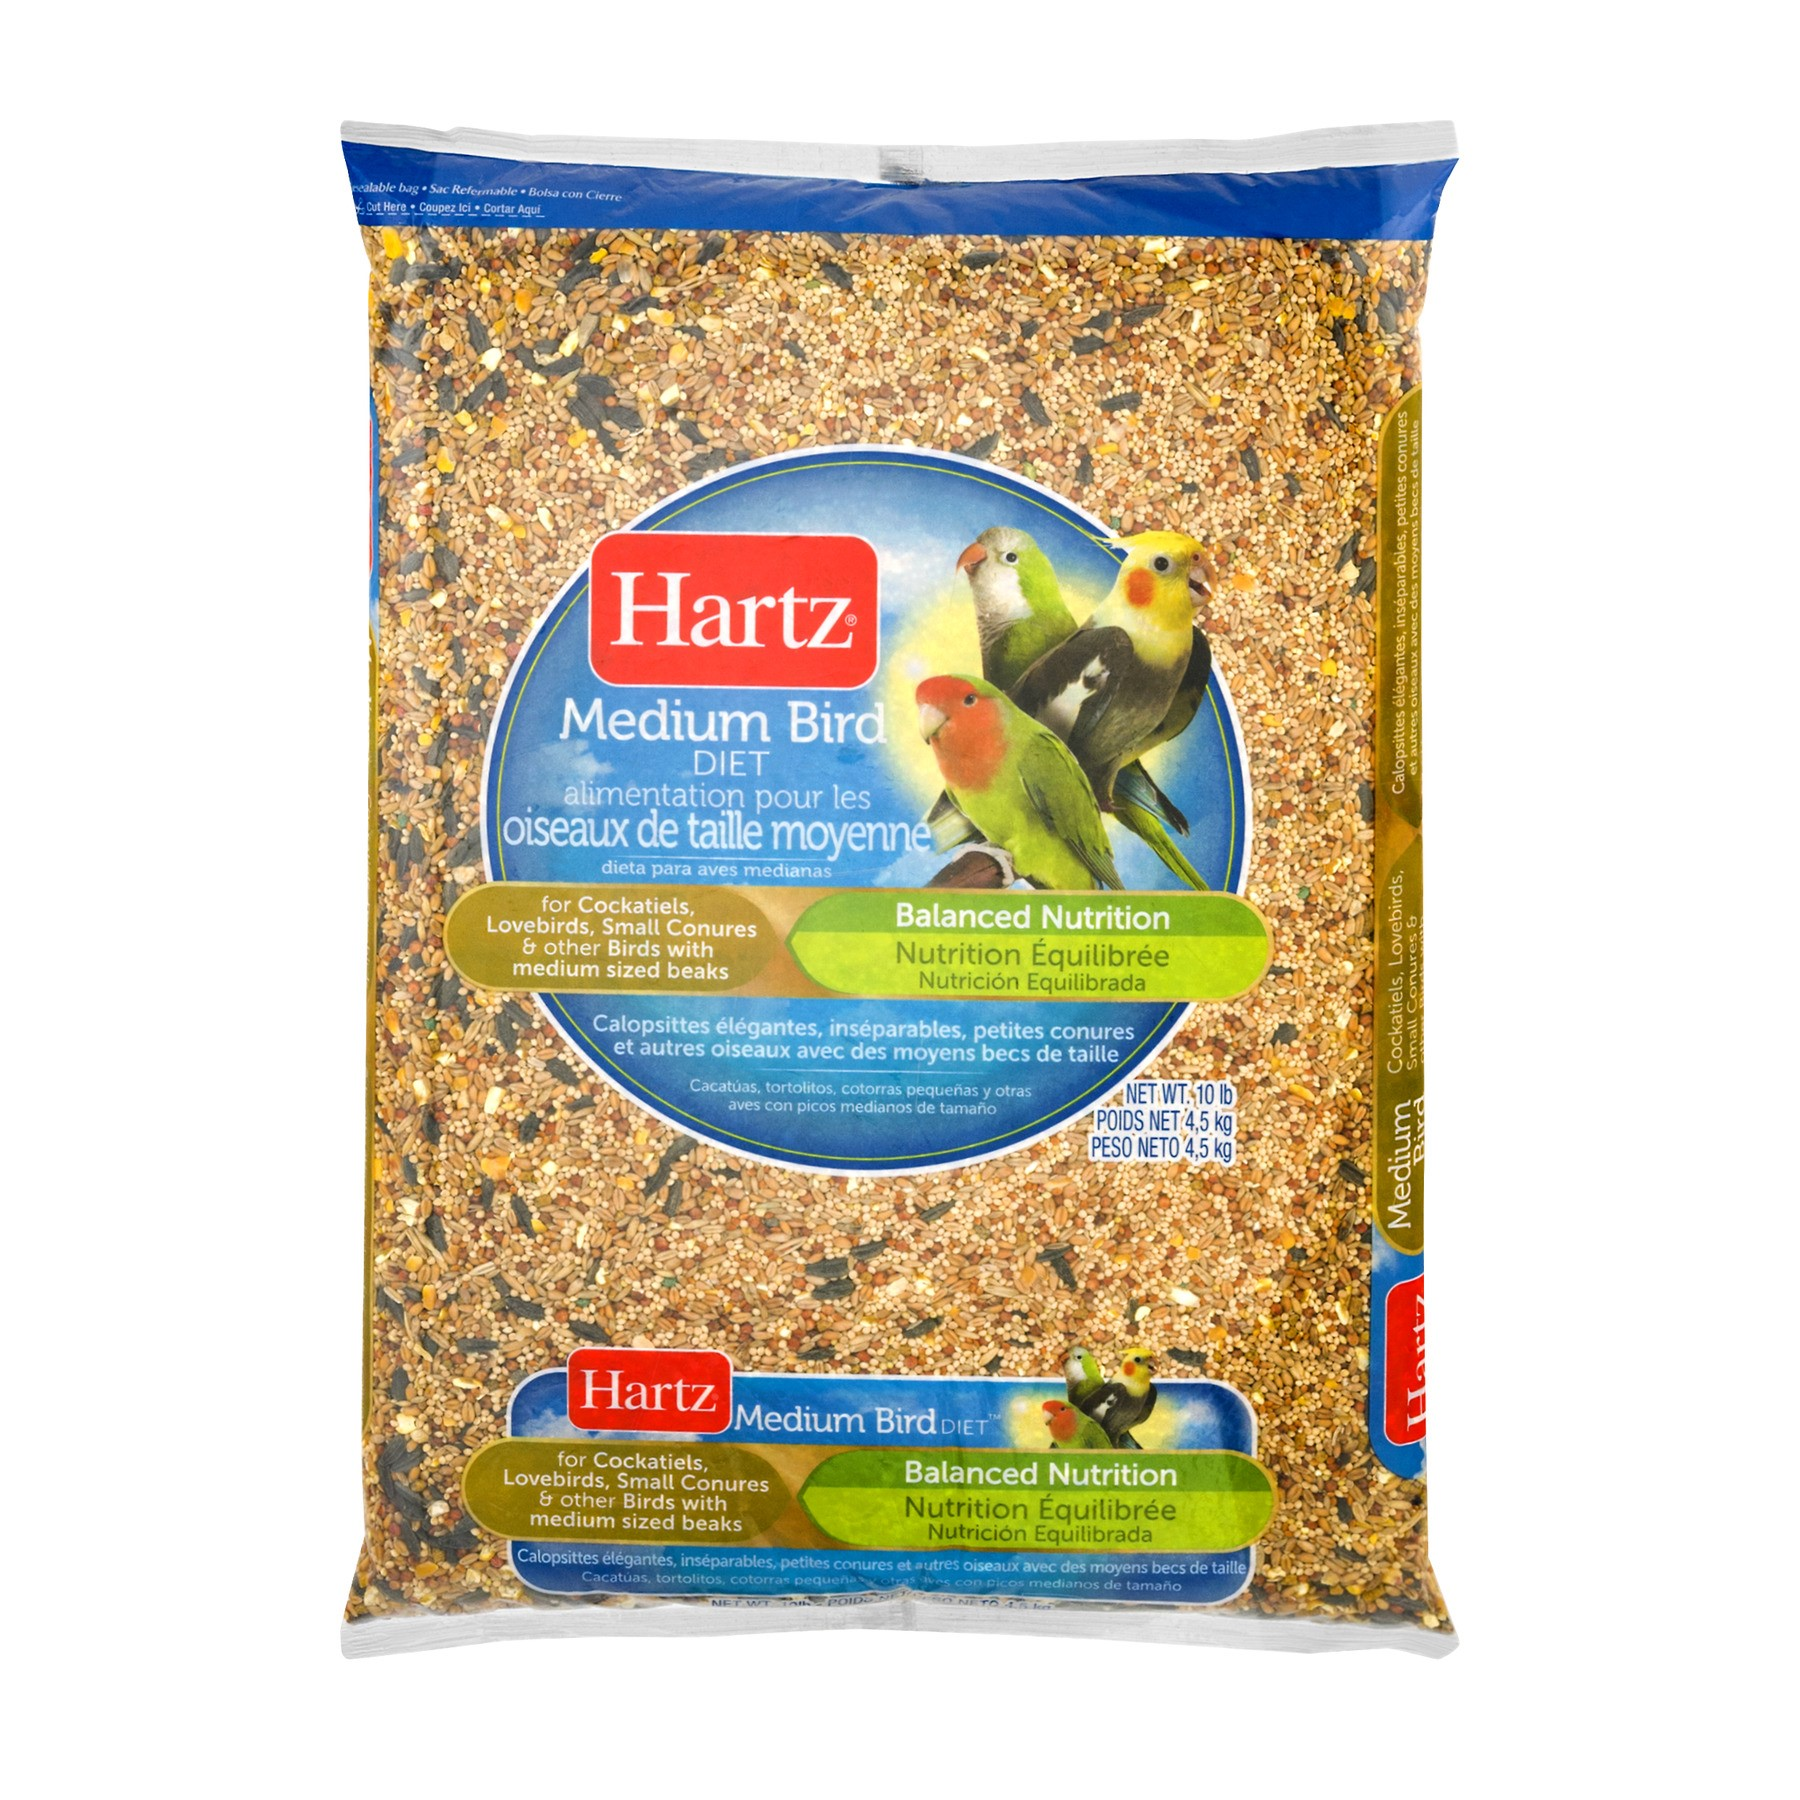 Hartz Medium Bird Food, 10.0 LB